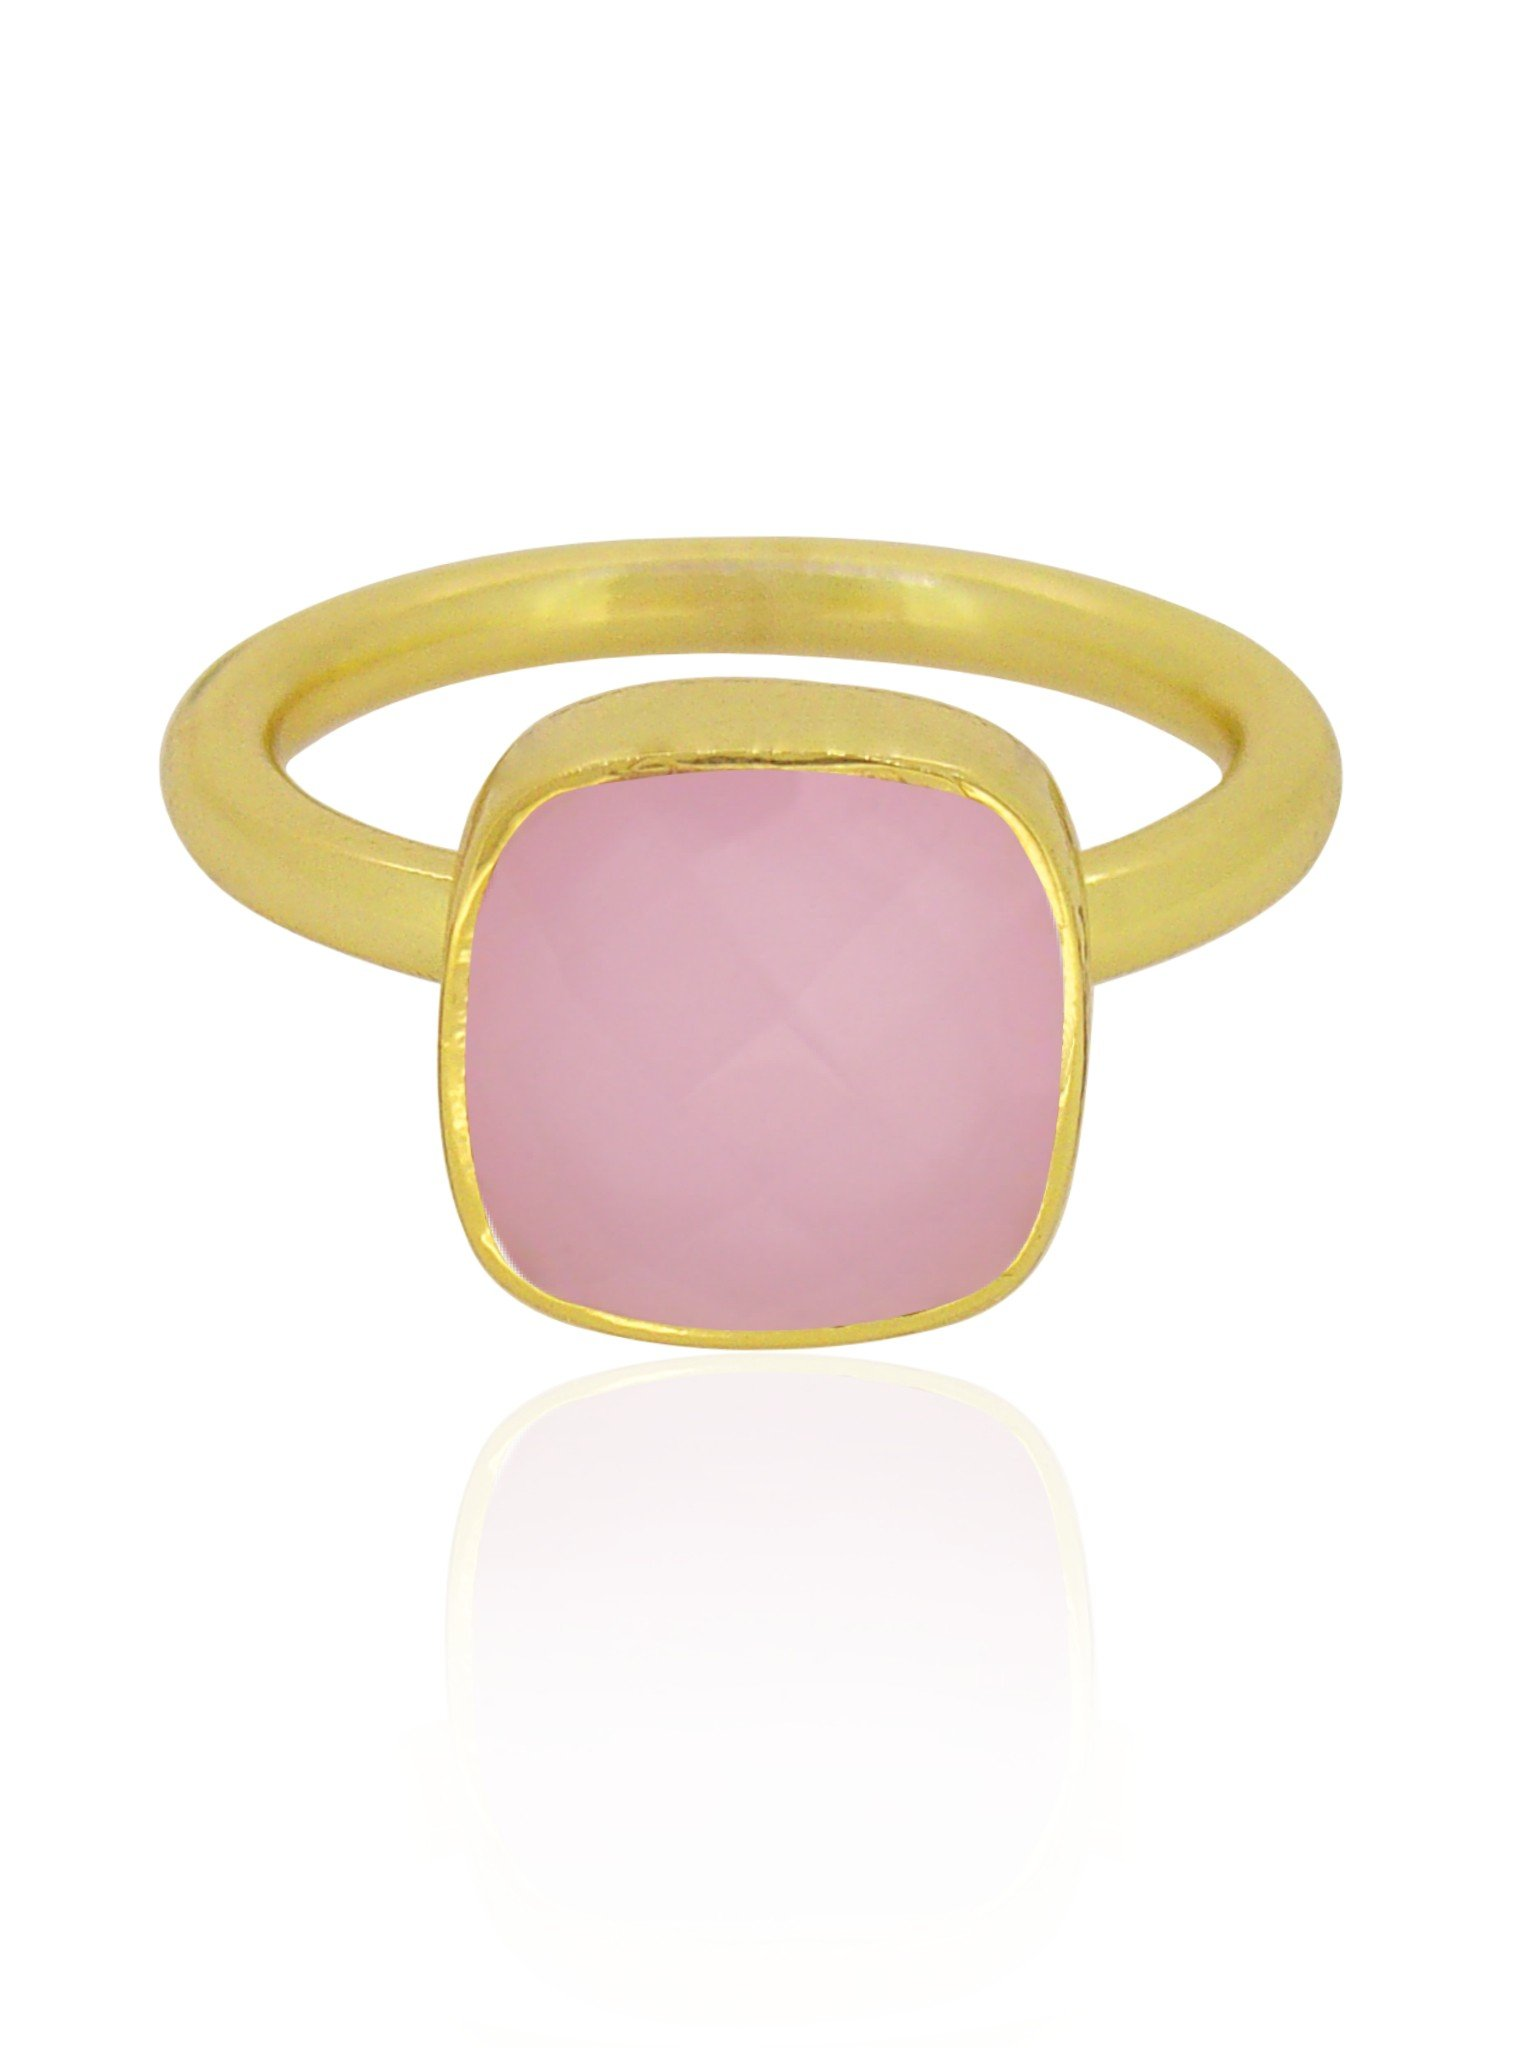 Indie Pink Chalcedony Gemstone Ring in Gold — Jewellery Co. Australia